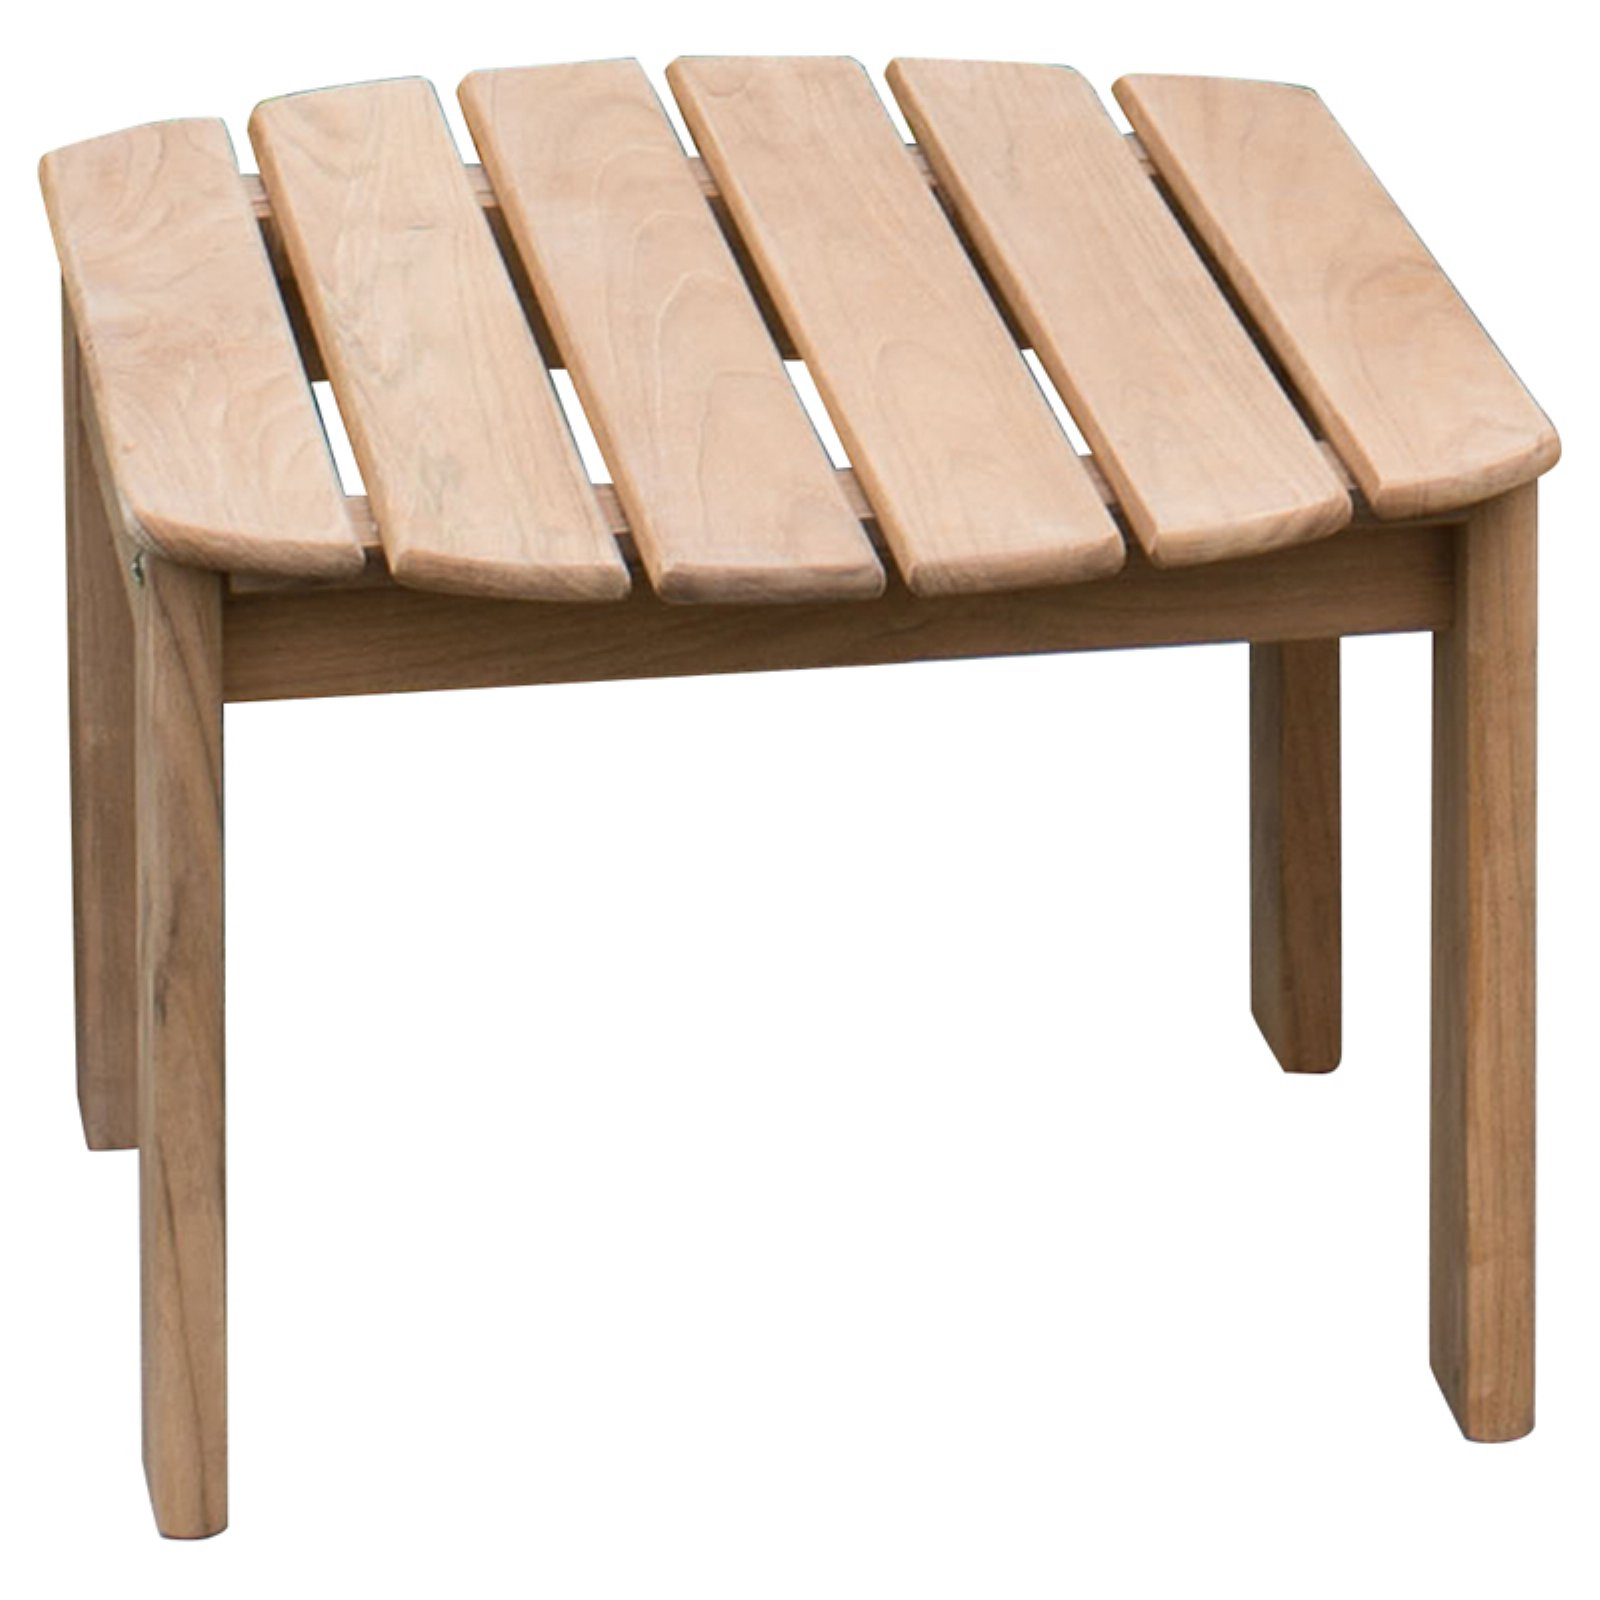 Cambridge Casual Teak Adirondack Side Table